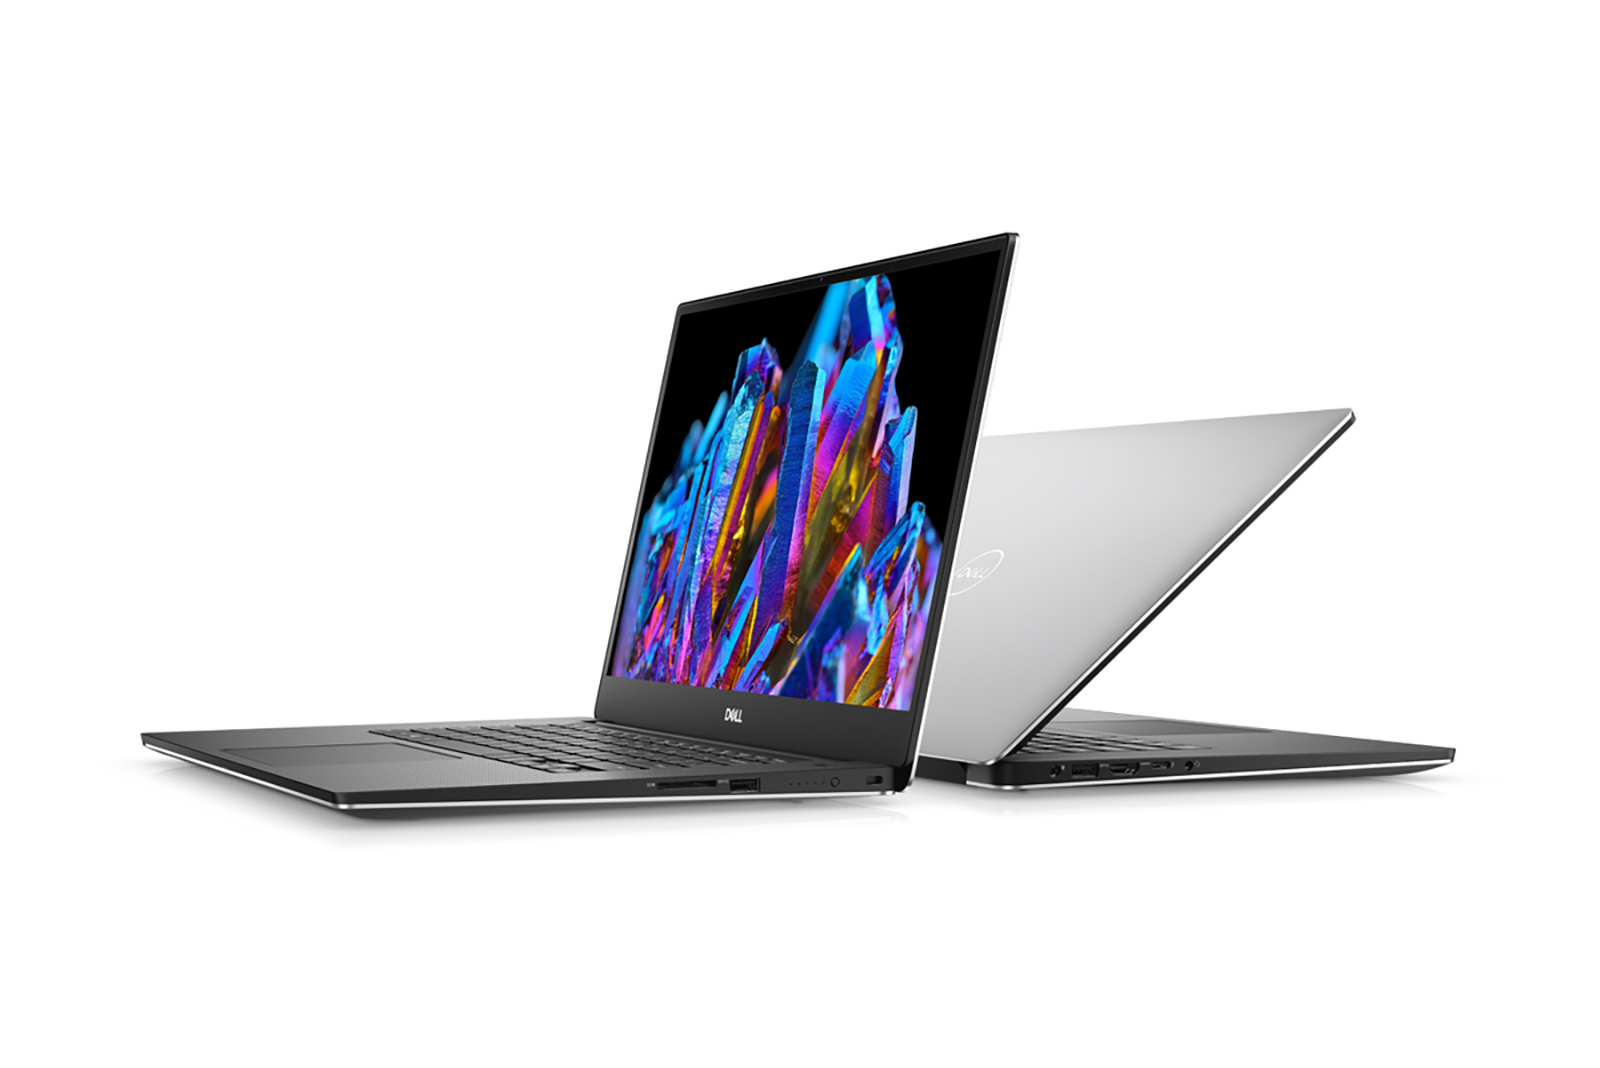 black-friday-2020-dell-xps-15-laptop-notebook-deal-sale.png